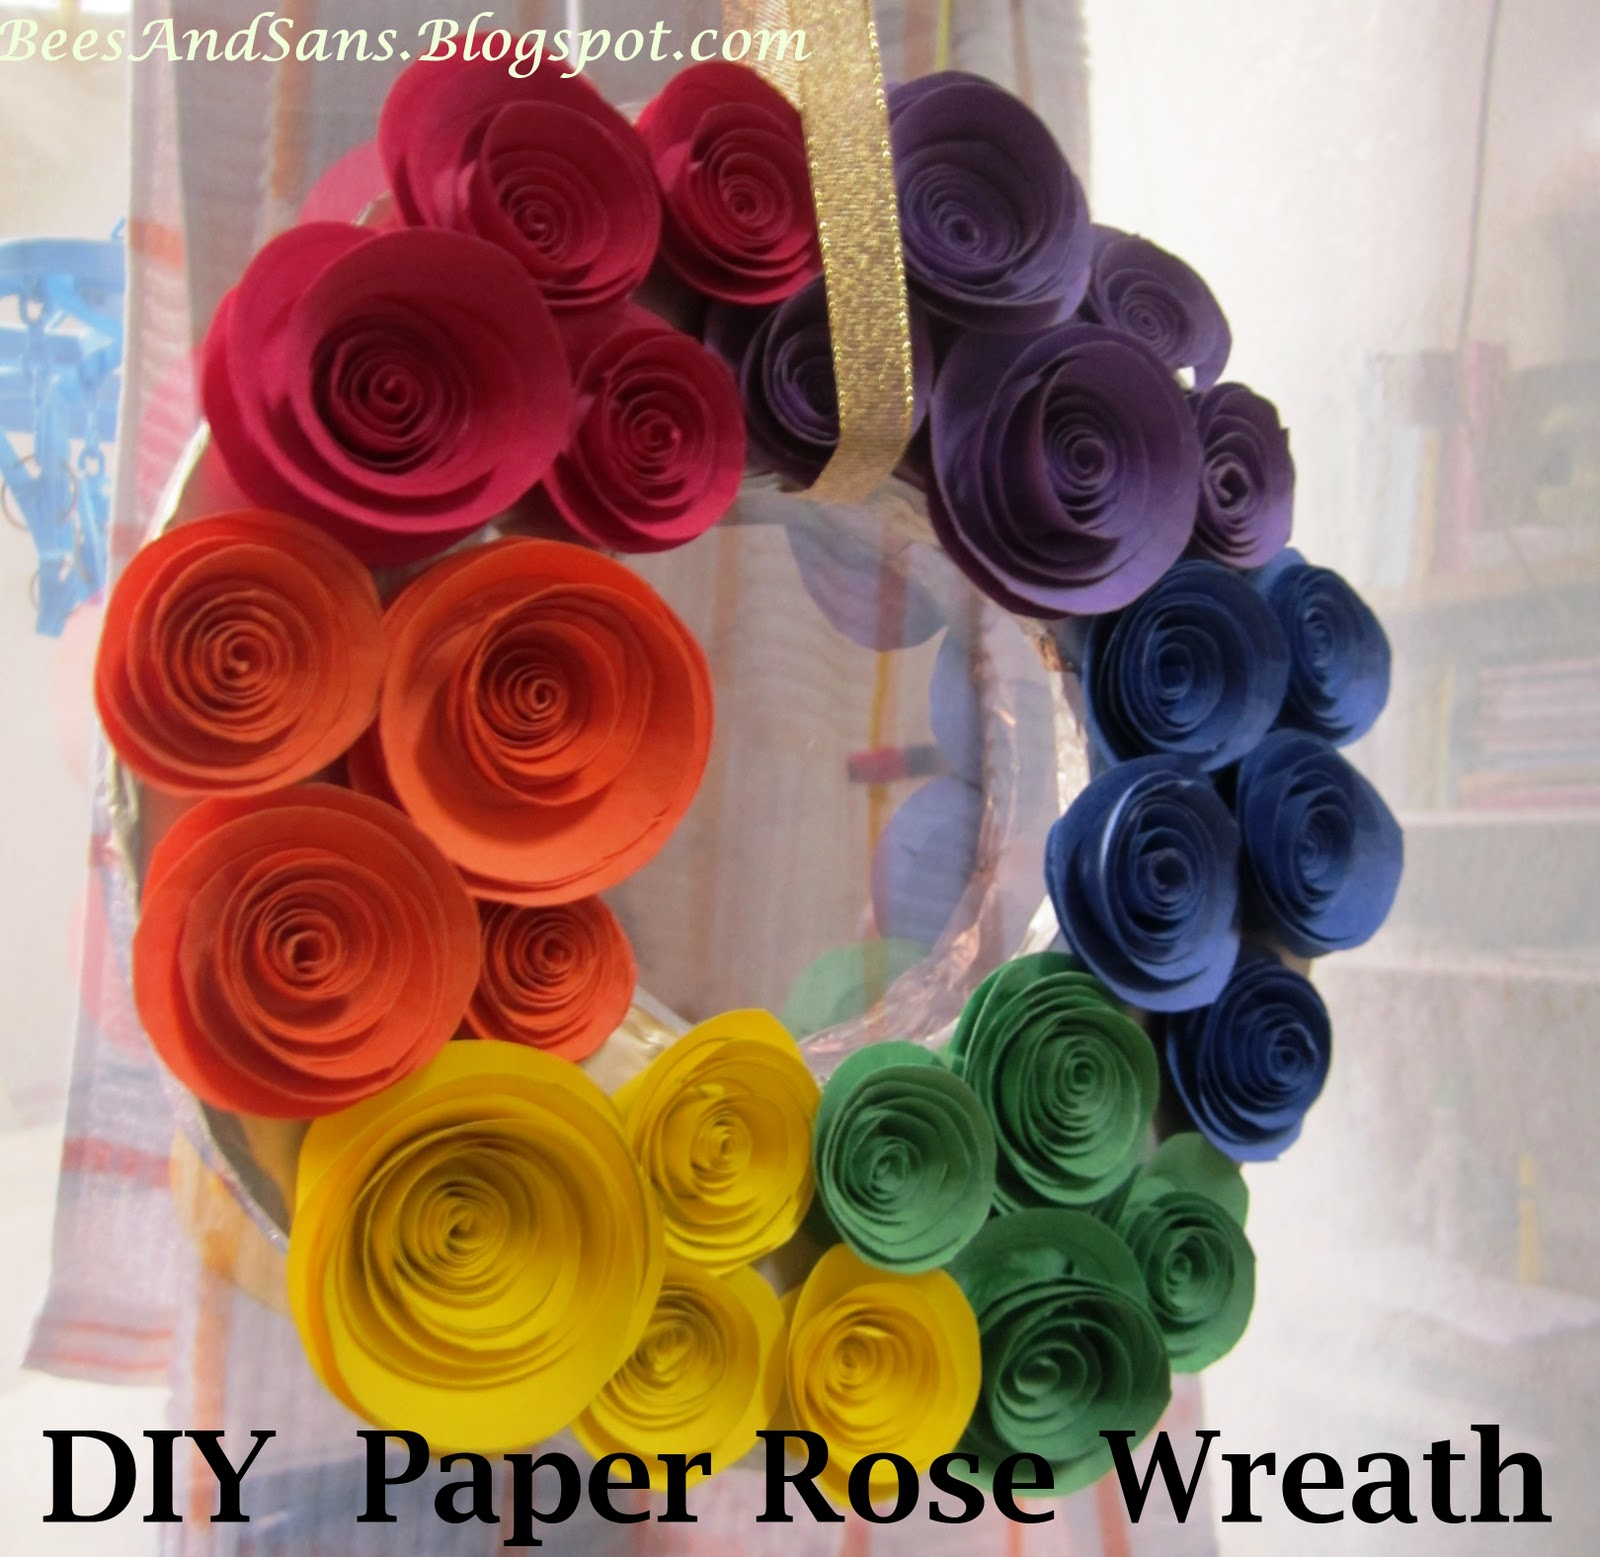 Bees And Sans Diy Rainbow Coloured Paper Rose Wreath